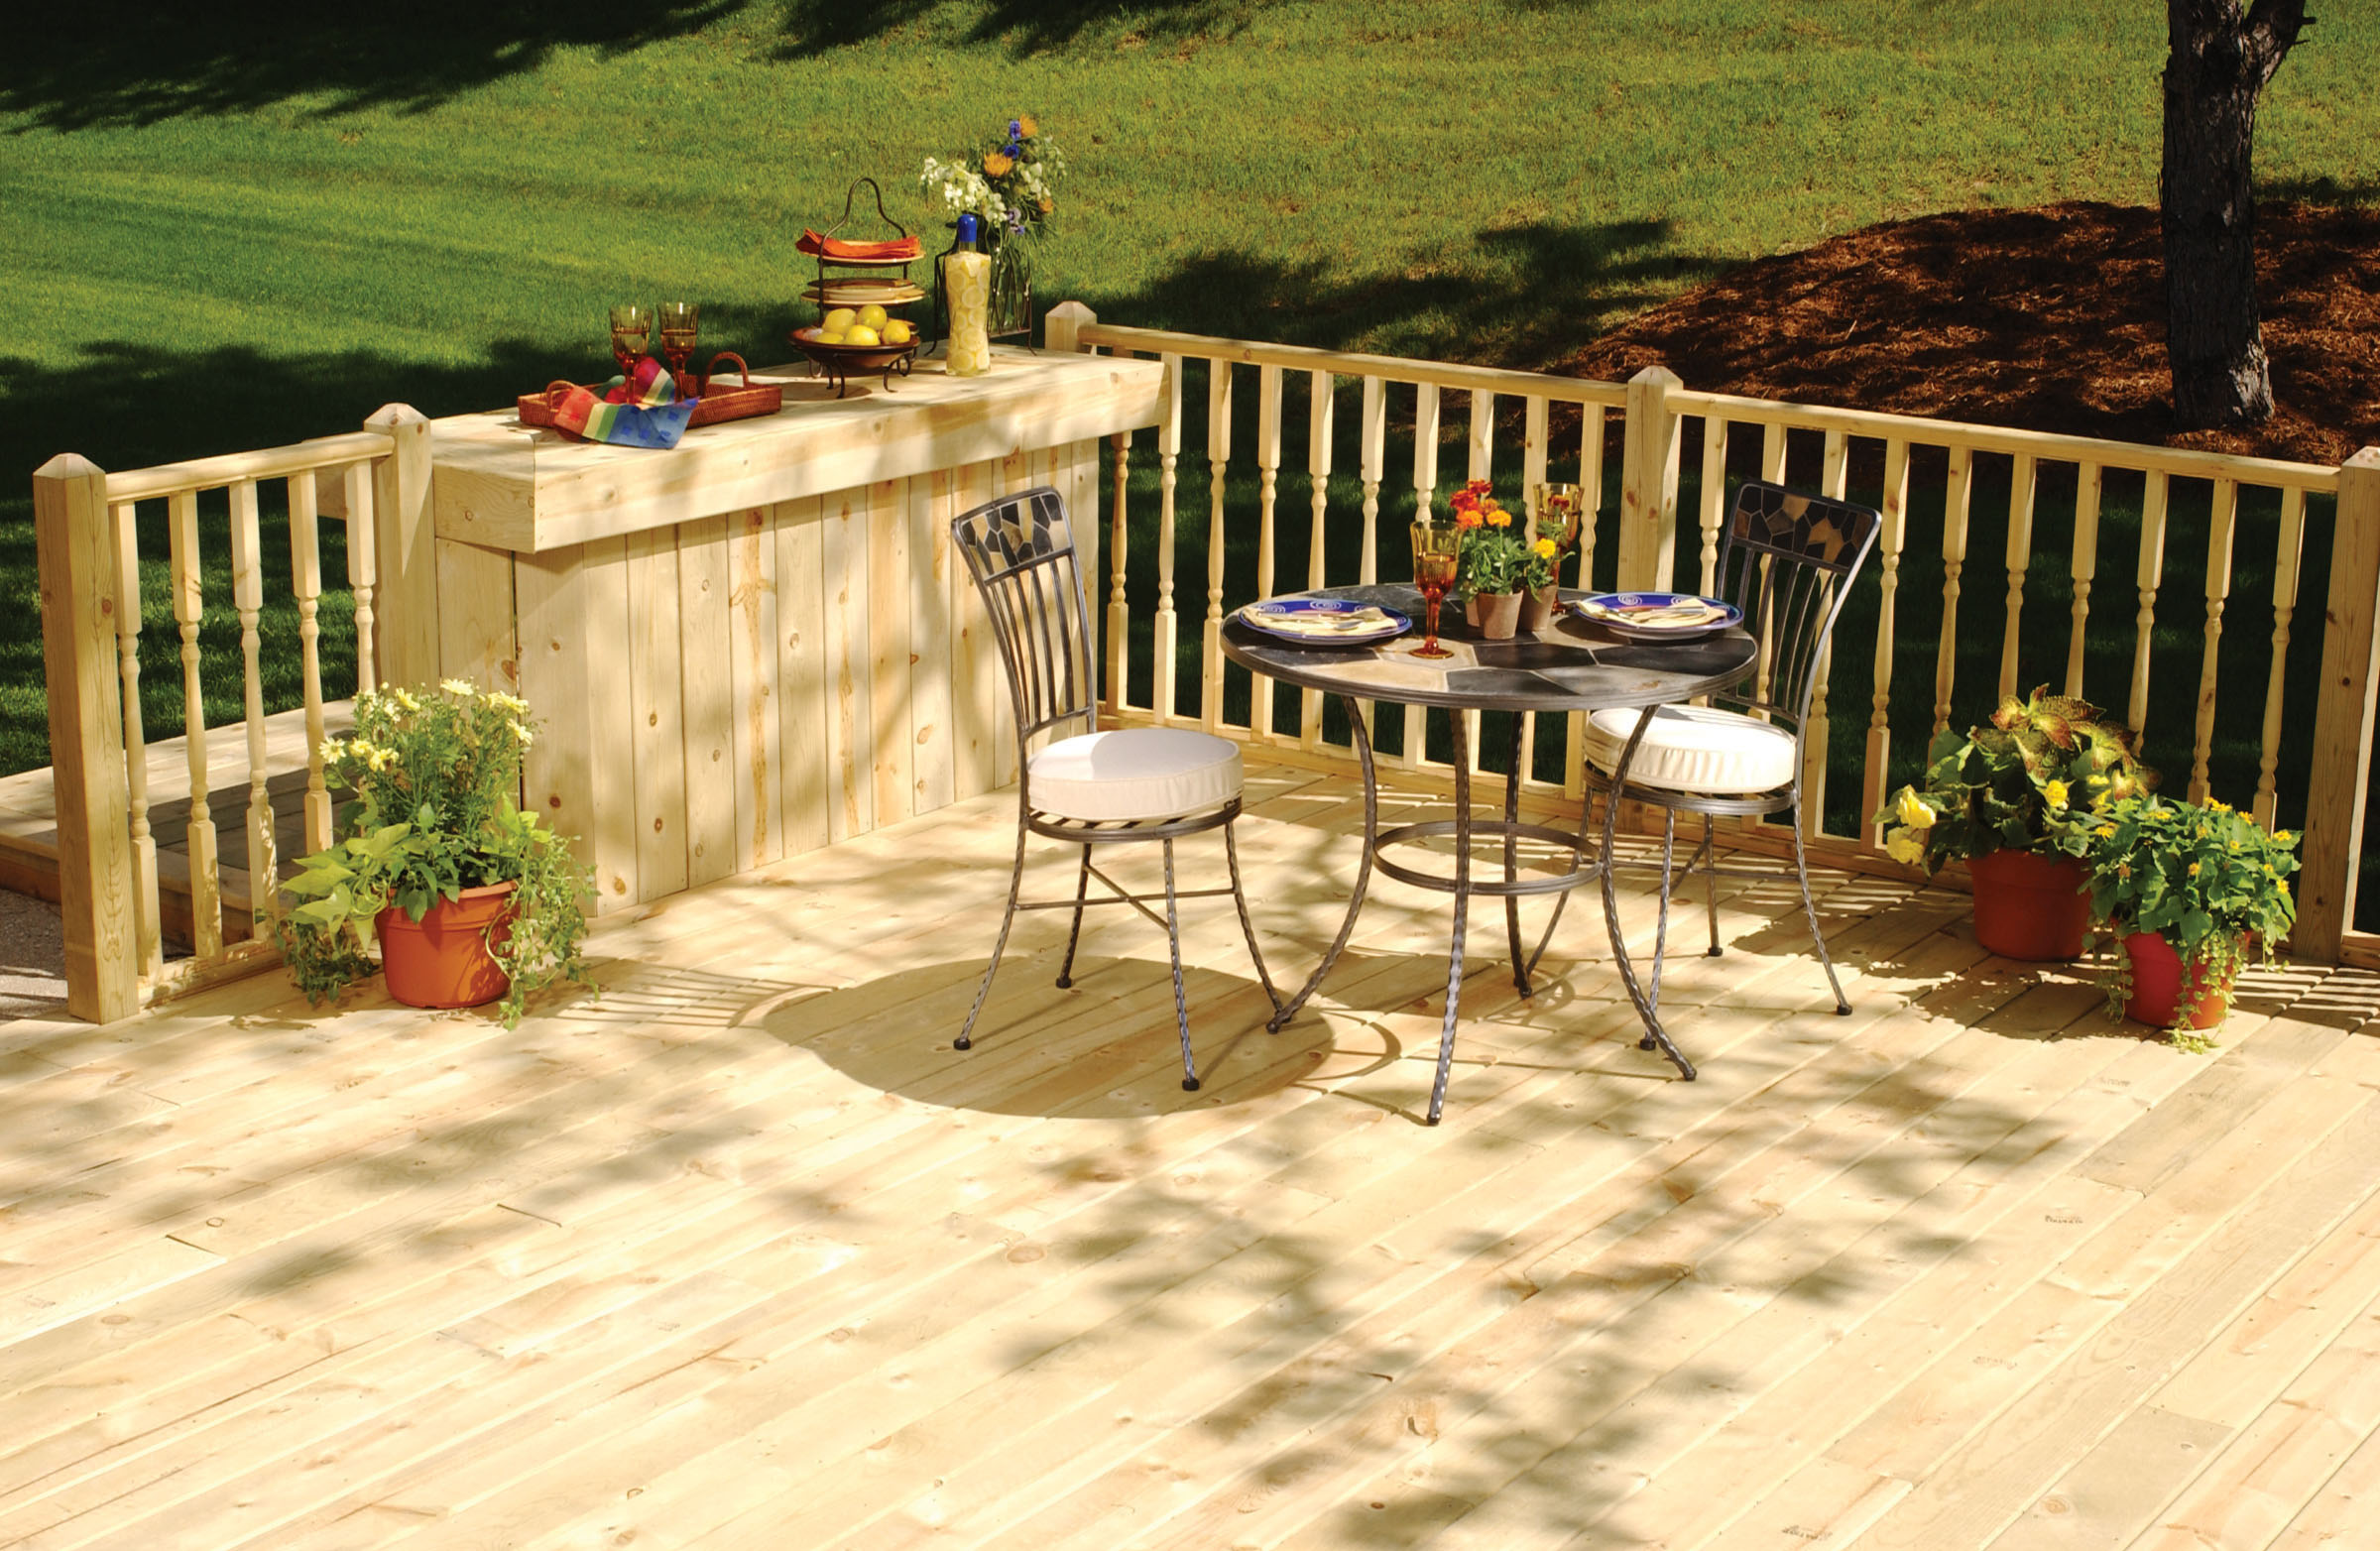 Patio Deck Art Designs New 2016 Contemporain Terre En Bois